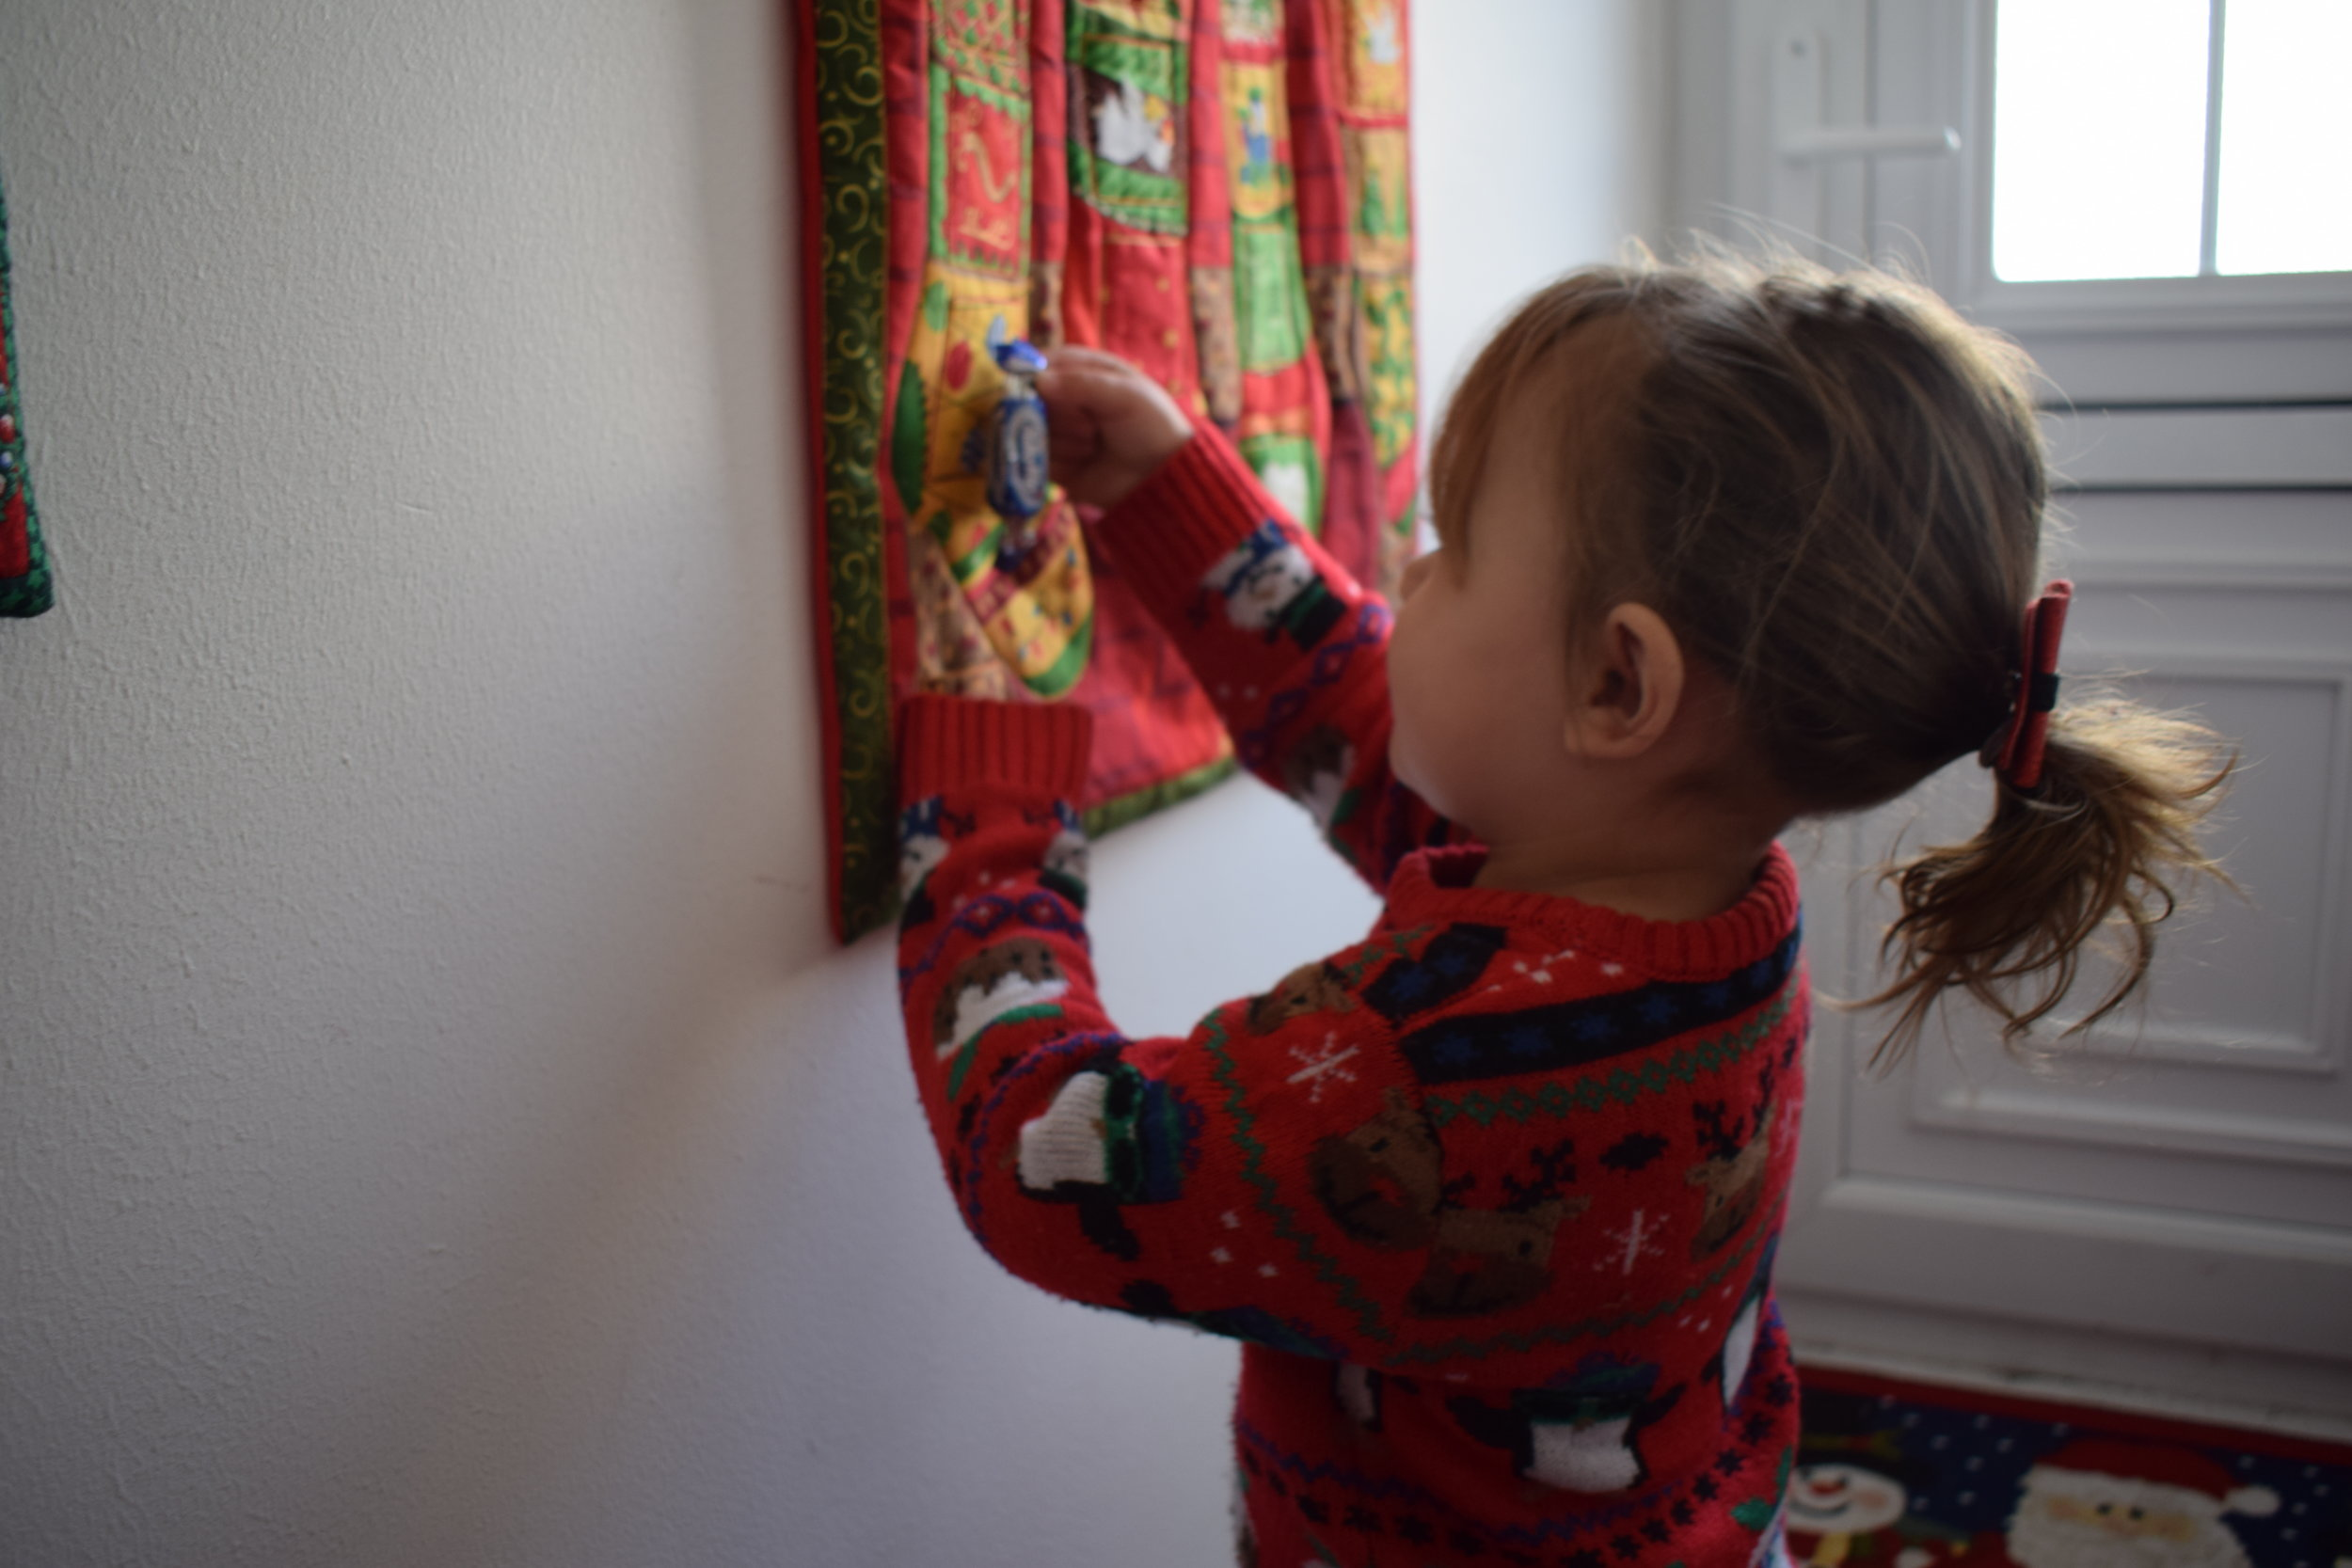 What's in the advent calendar?